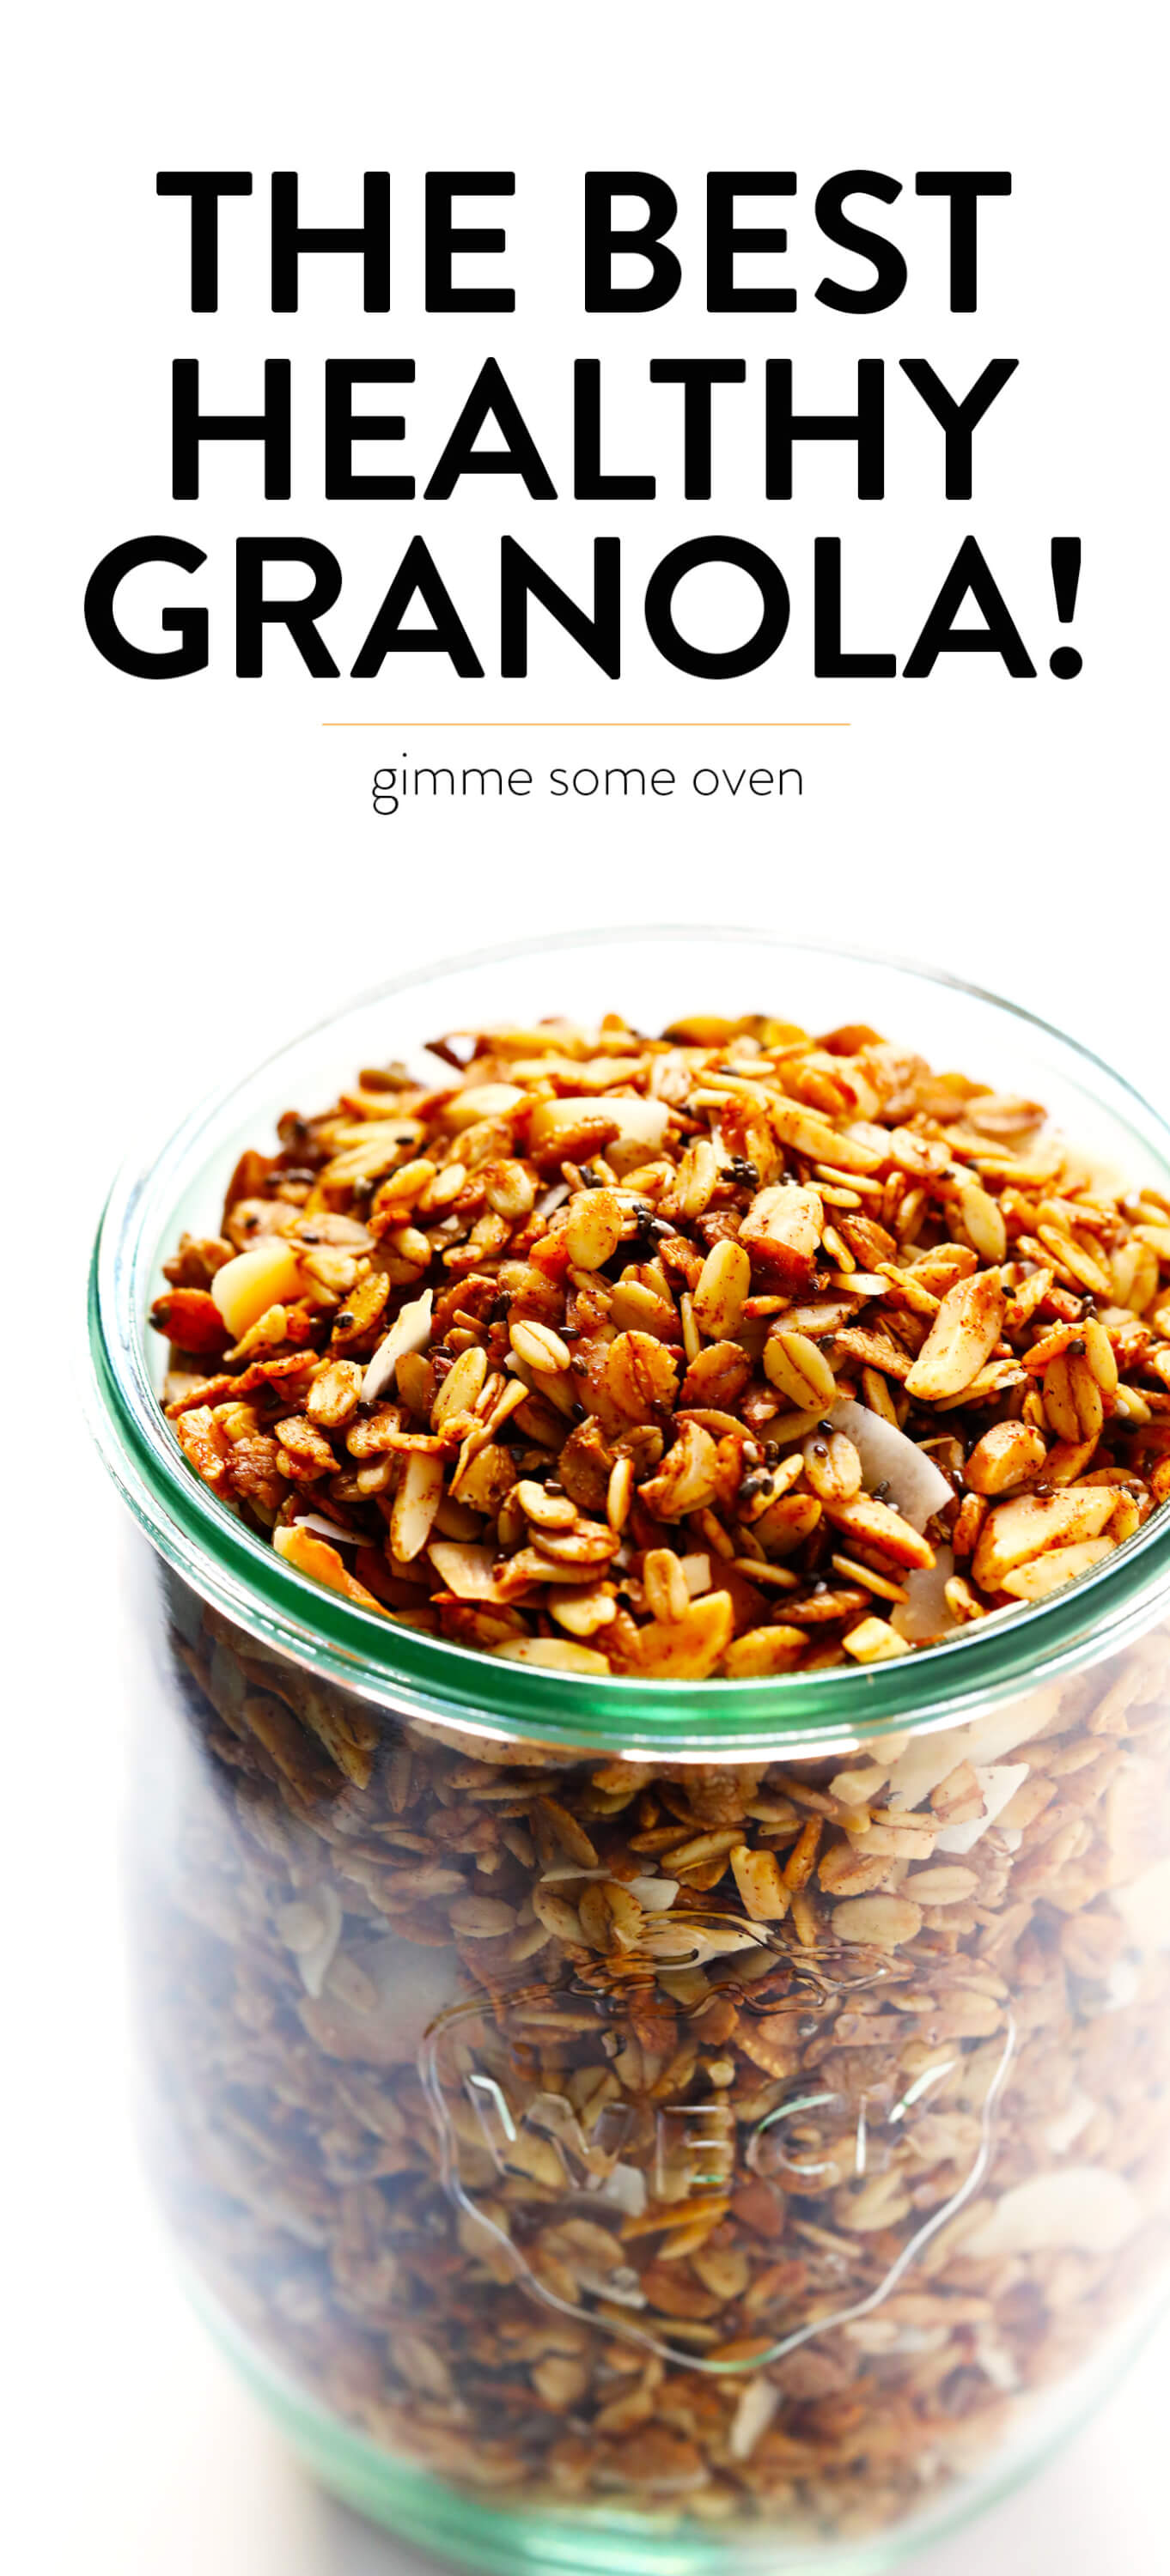 The BEST Healthy Granola! | Gimme Some Oven